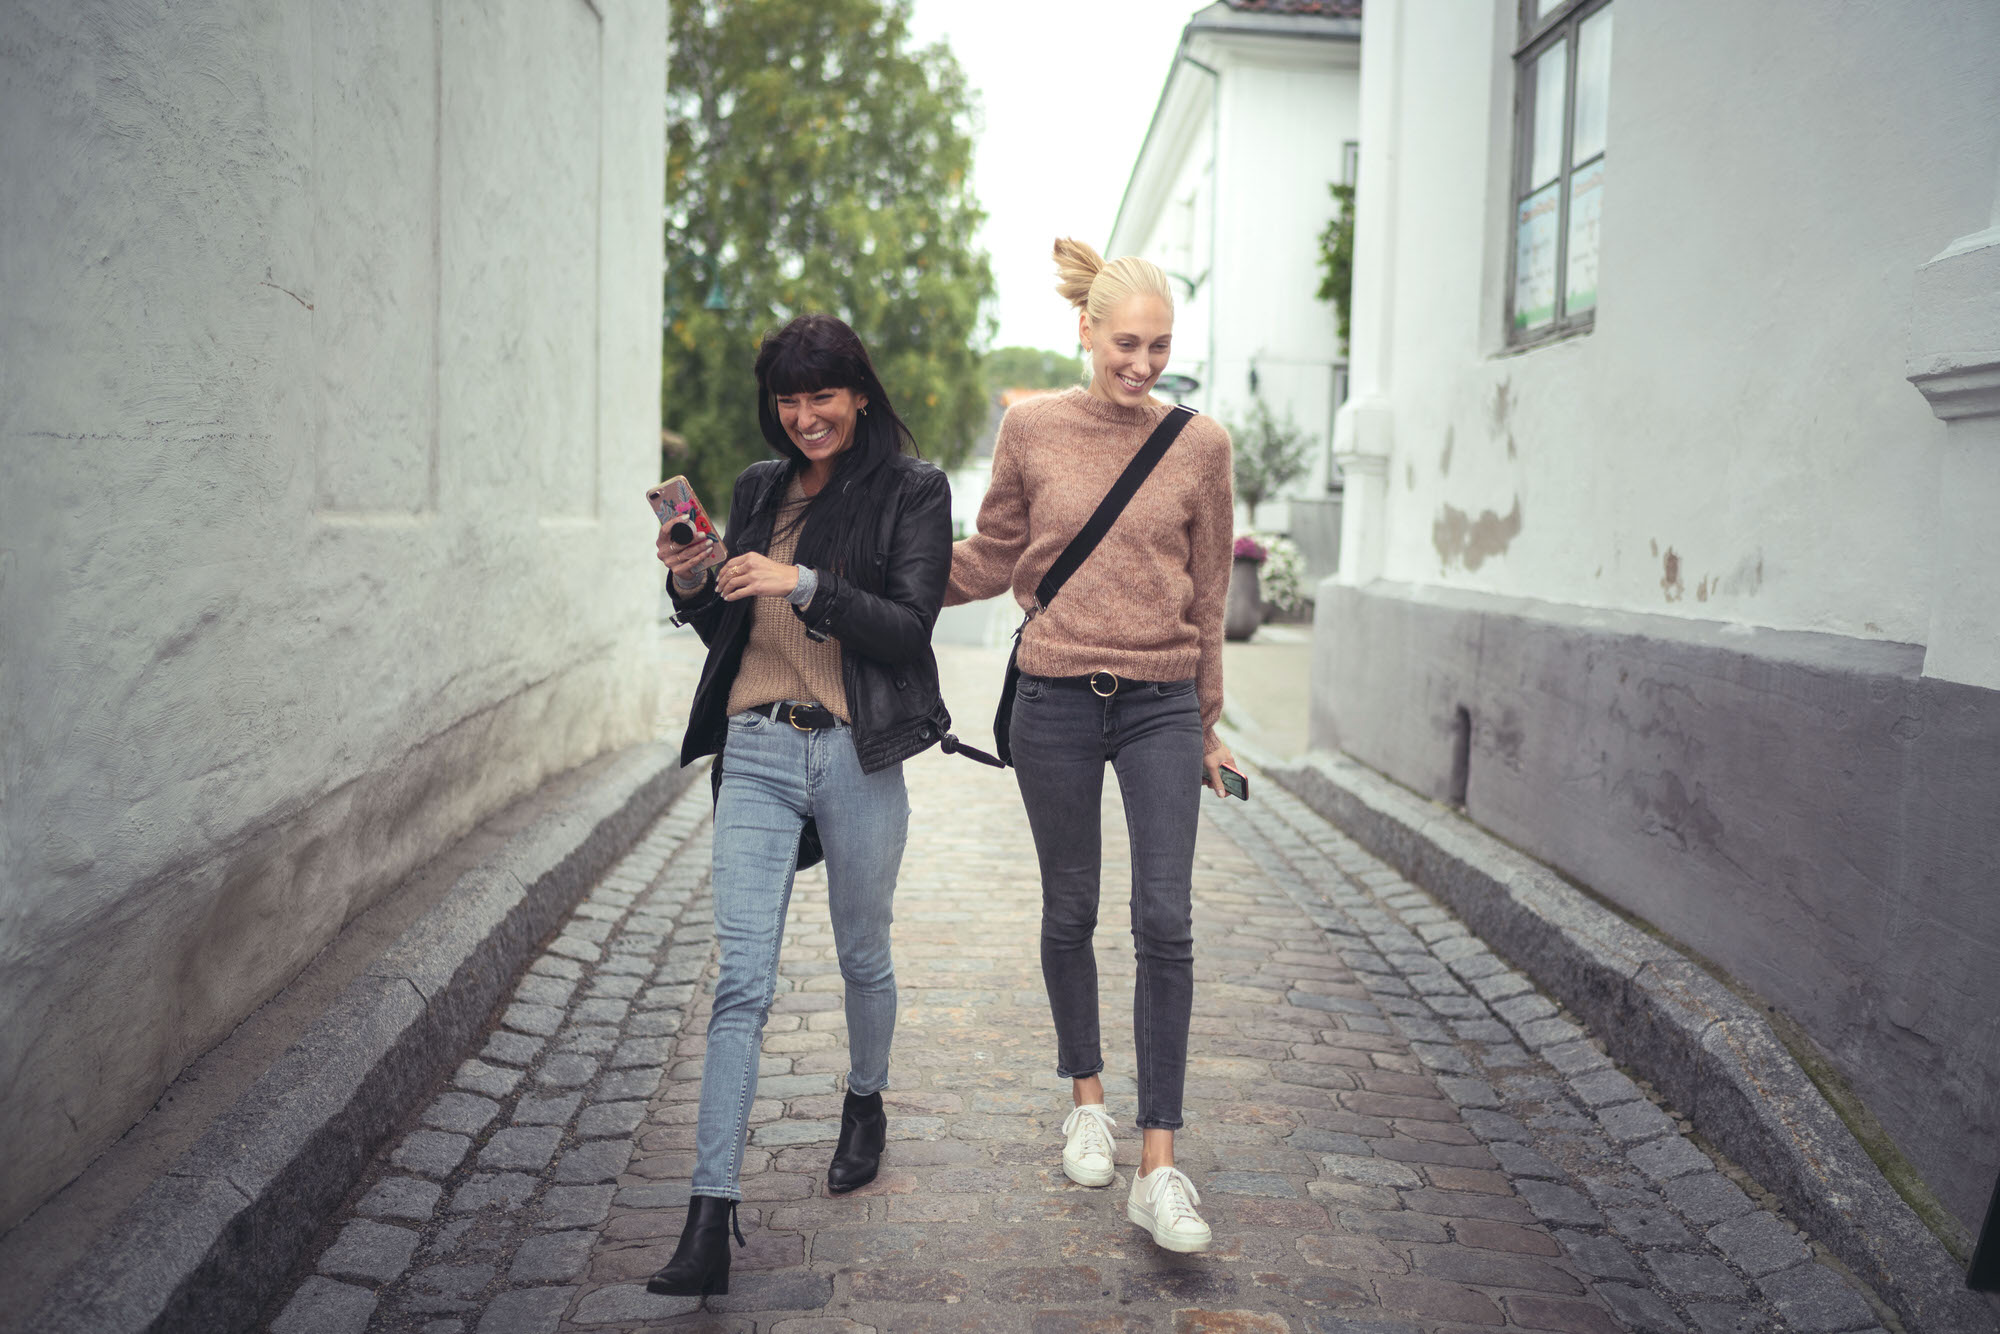 Best Friends Chelsea and Andrea walking down the streets of Son, Norway